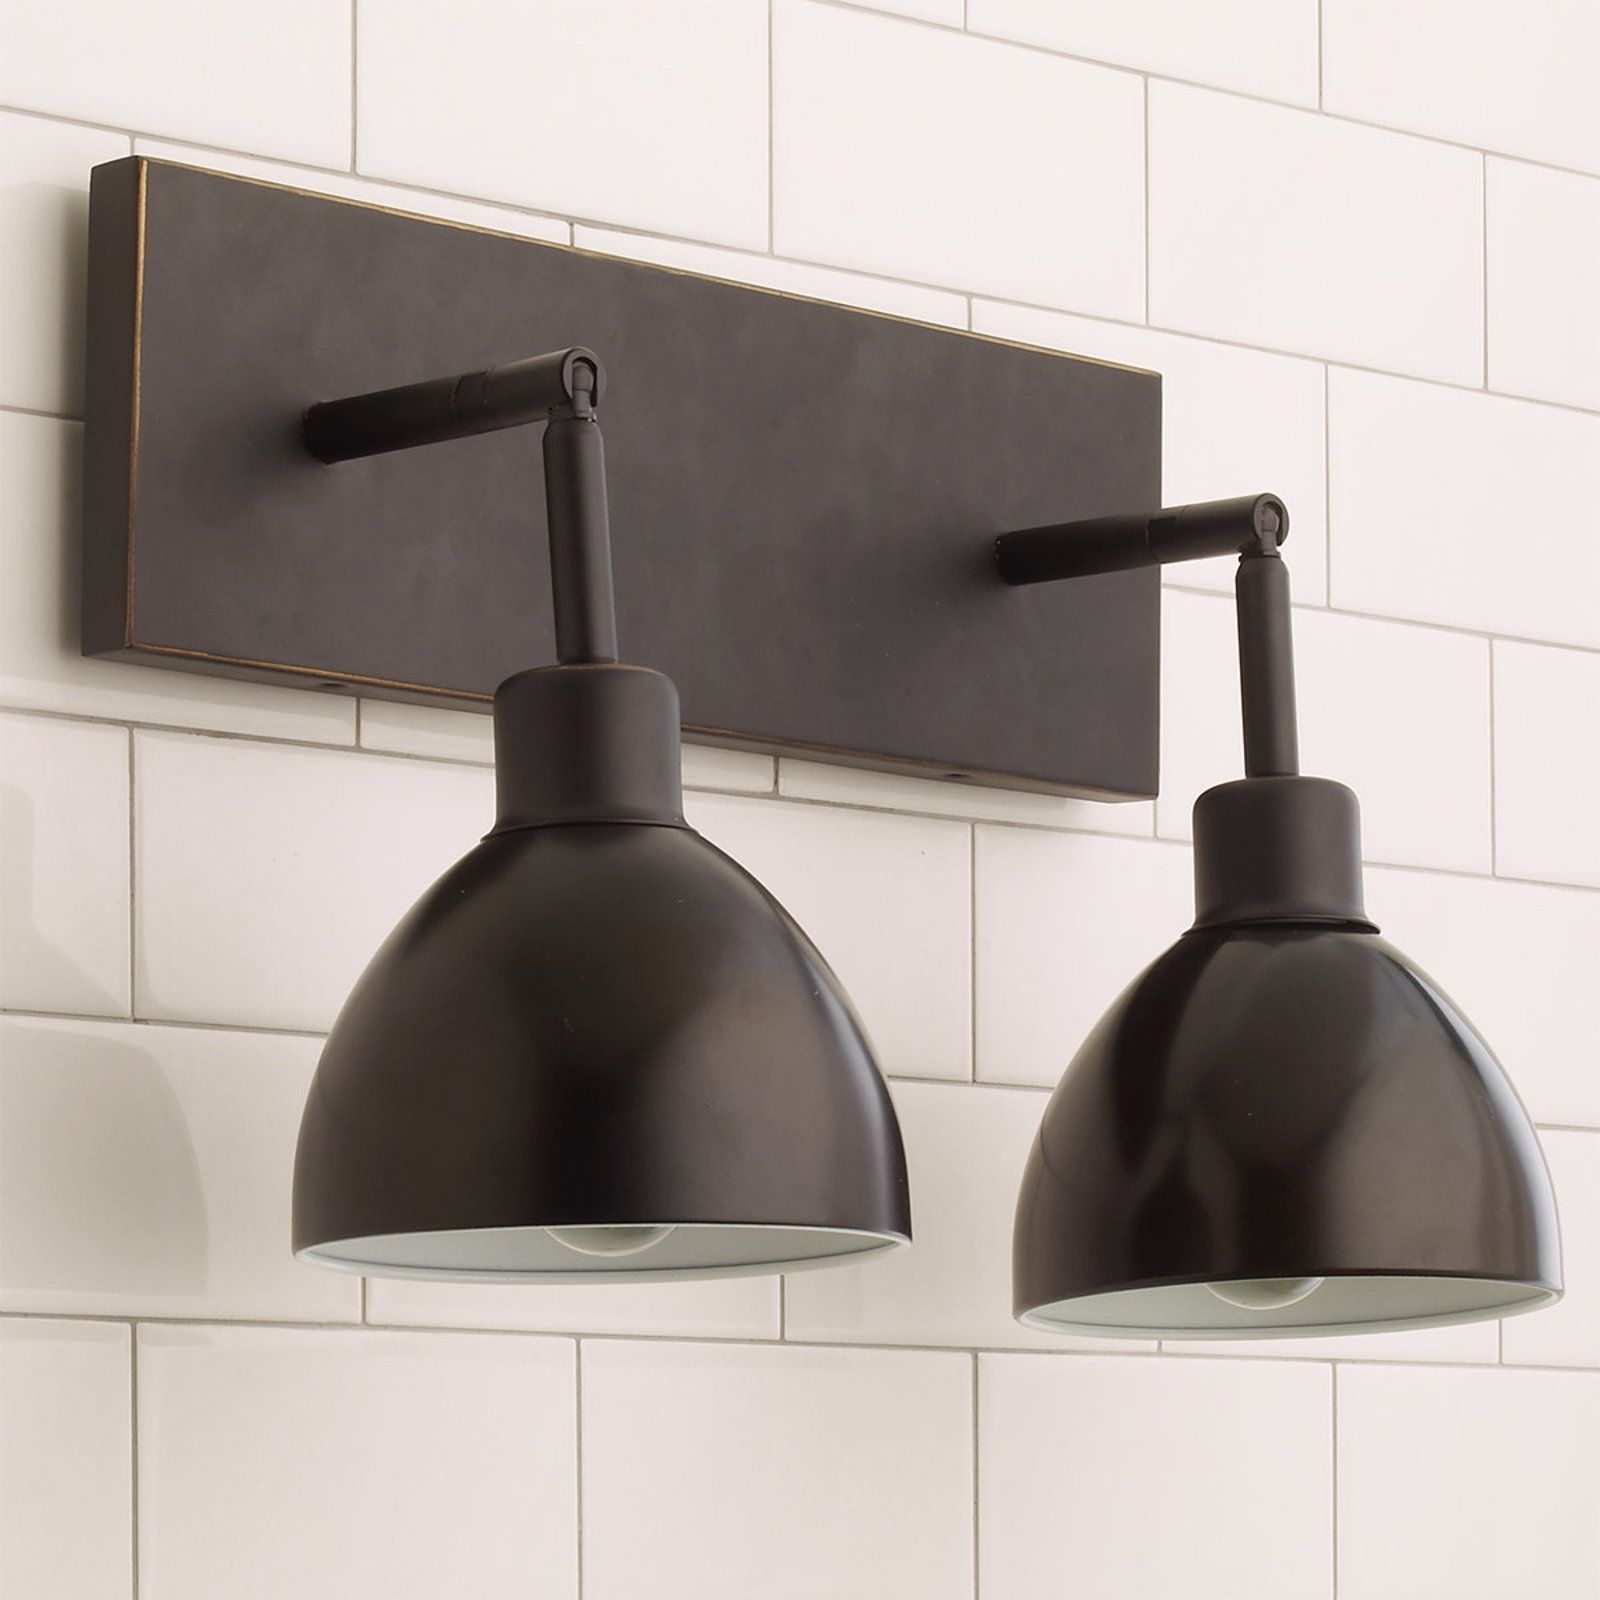 light wall vanity double cage kichler bayley industrial head lighting chic lights bath outstanding fixtures bronze bathroom master style olde modern